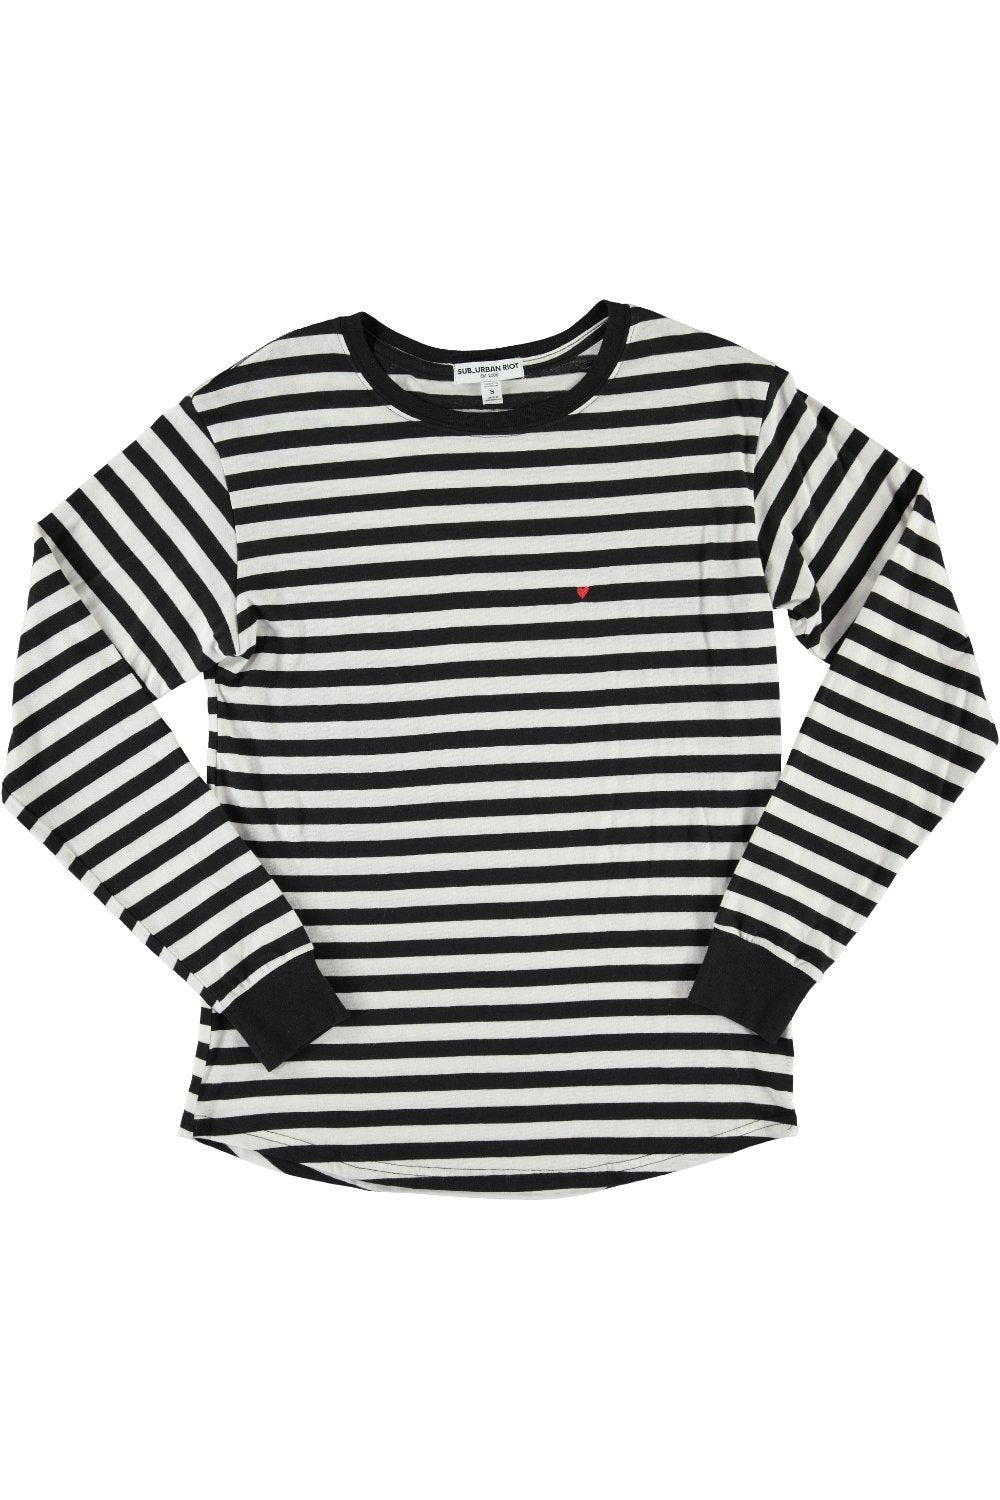 CHELSEA STRIPE ATHENA L/S YOUTH TEE